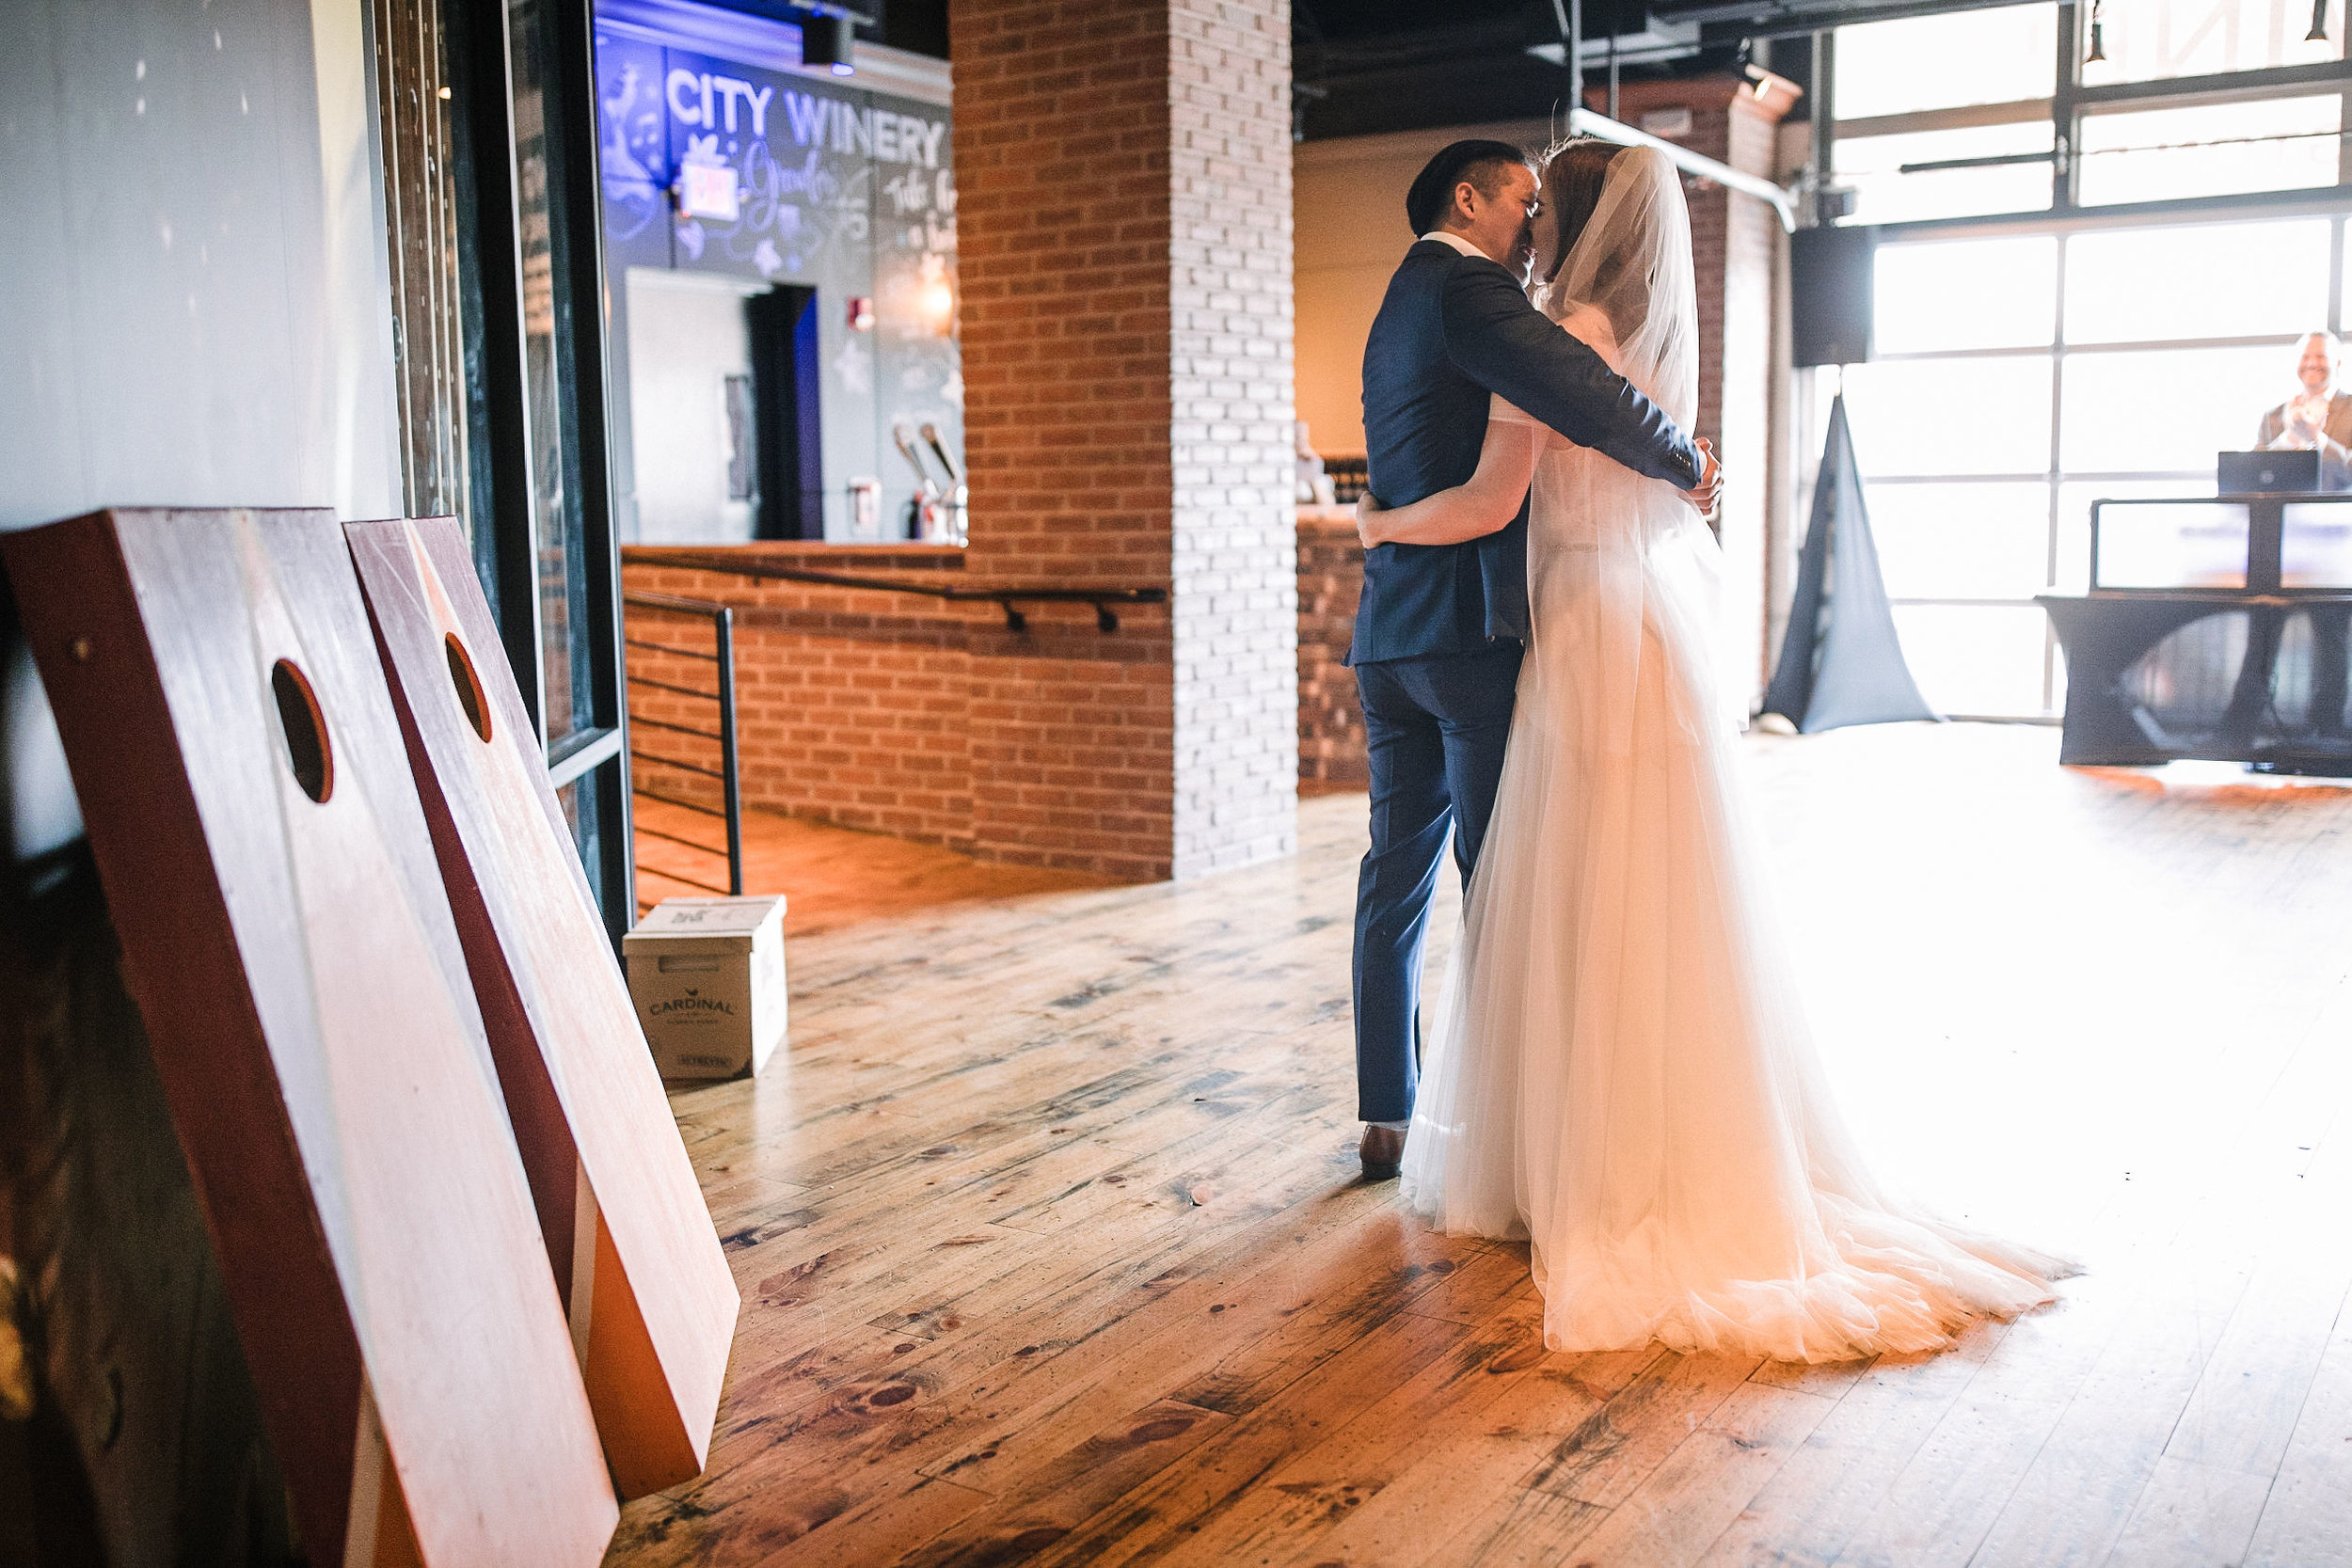 bride and groom kissing at City Winery in Washington DC